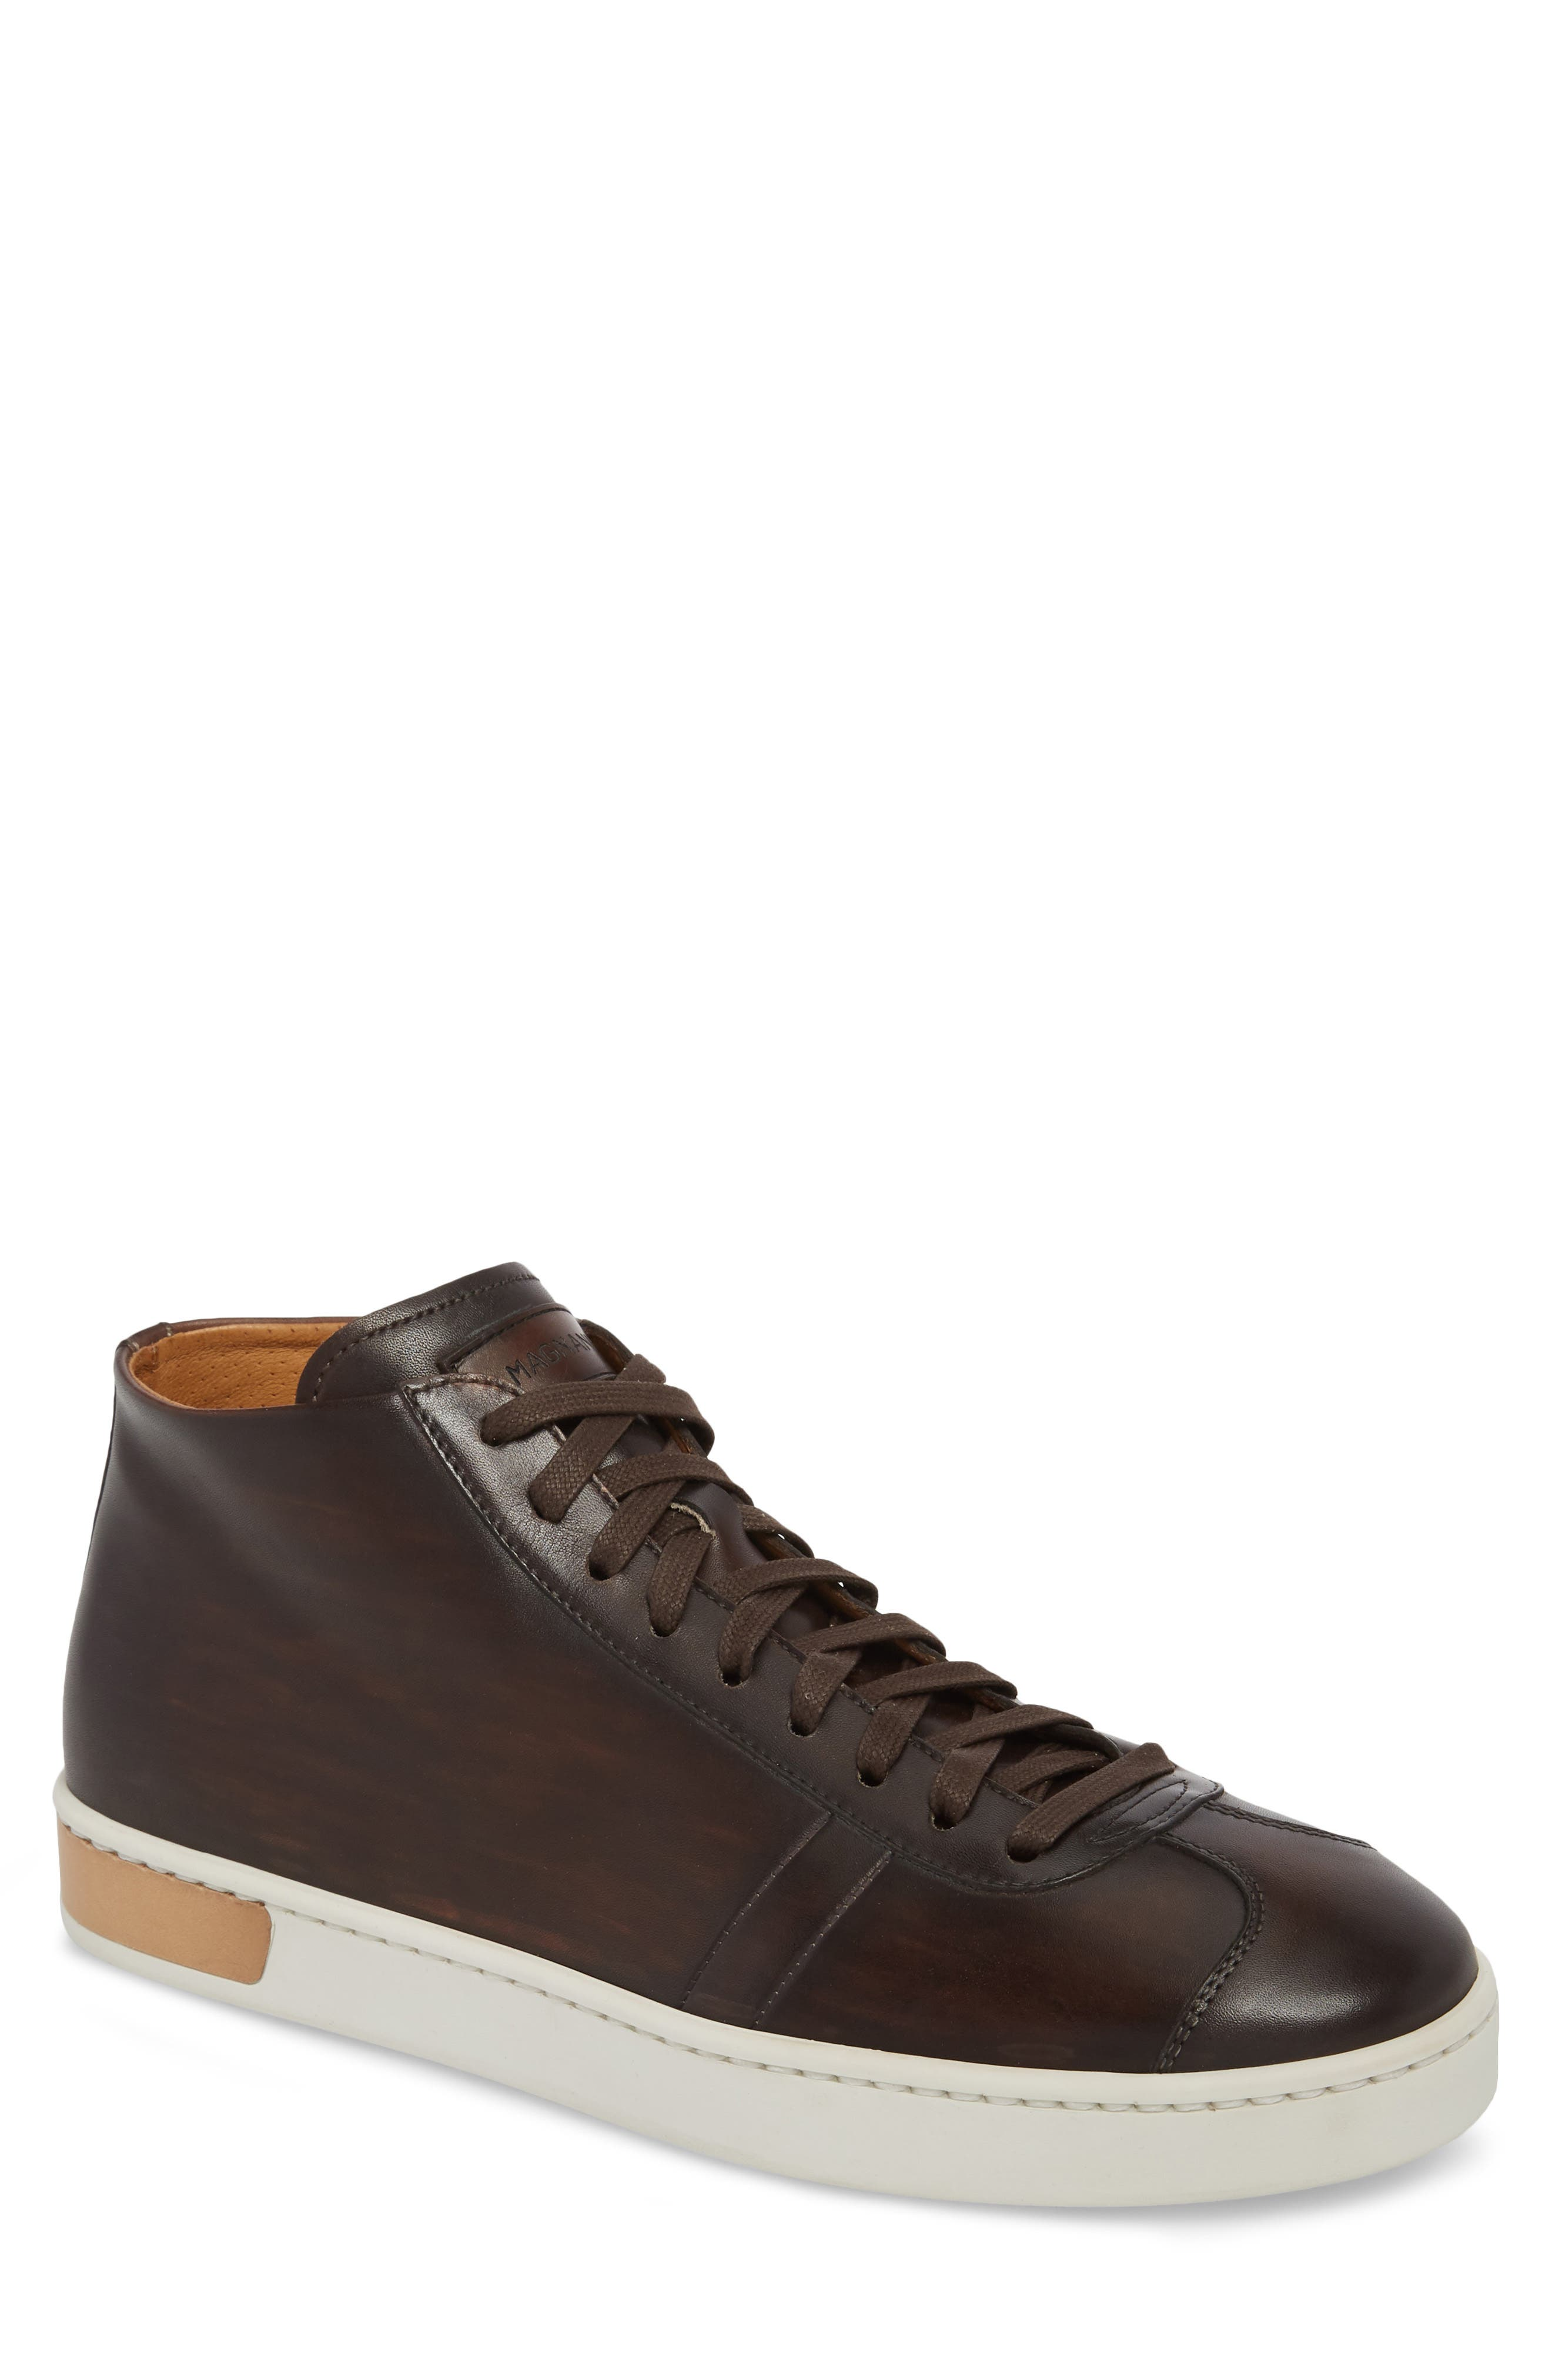 Gunner Mid Top Sneaker,                             Main thumbnail 1, color,                             Brown Leather